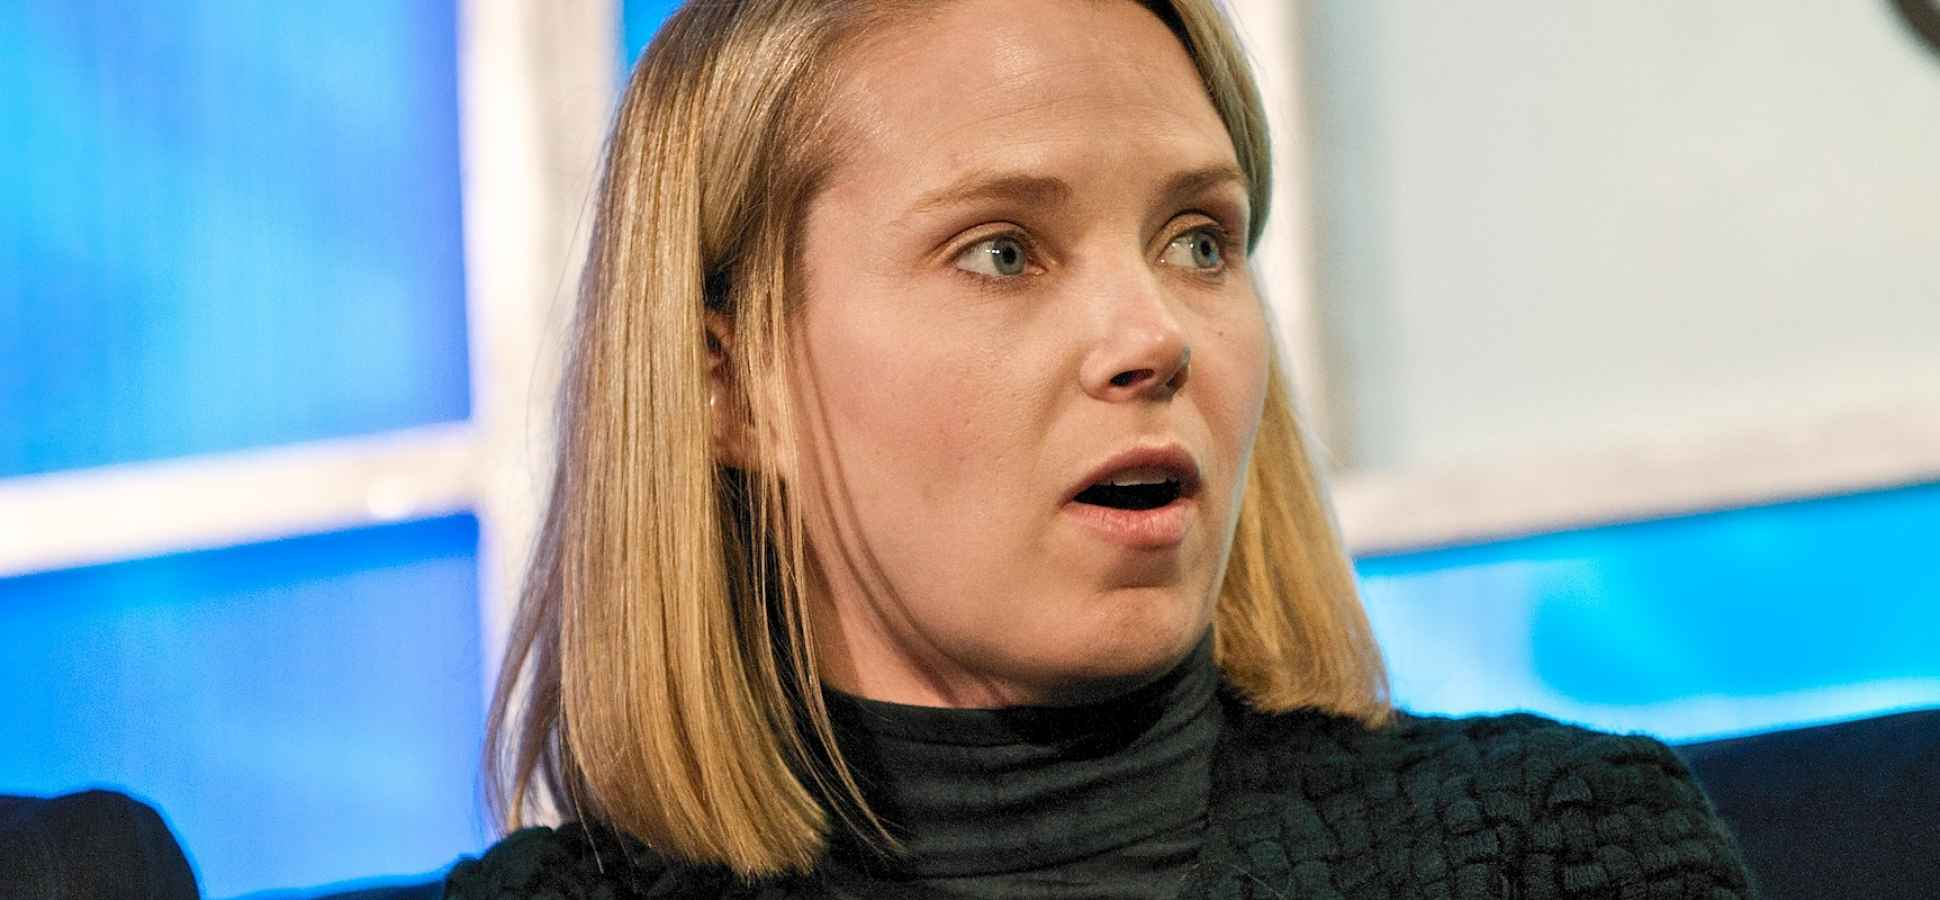 Marissa Mayer: Make Fewer Decisions and Empathize With Your Employees